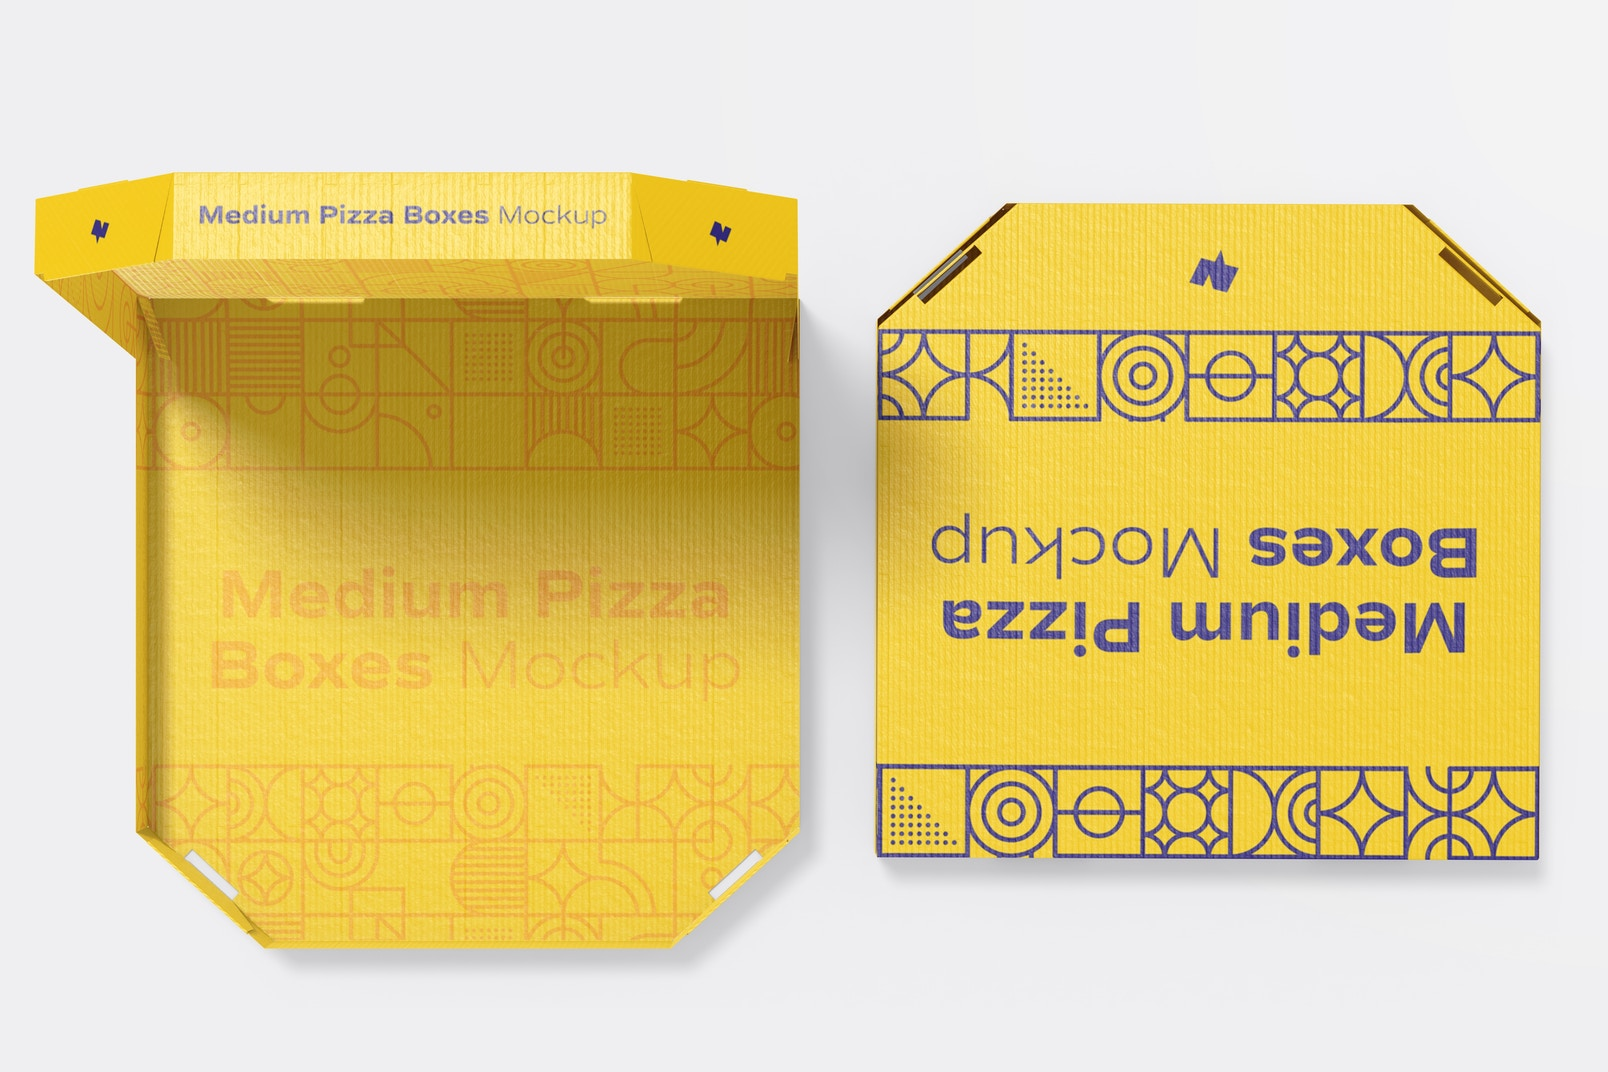 Medium Pizza Boxes Mockup, Opened and Closed